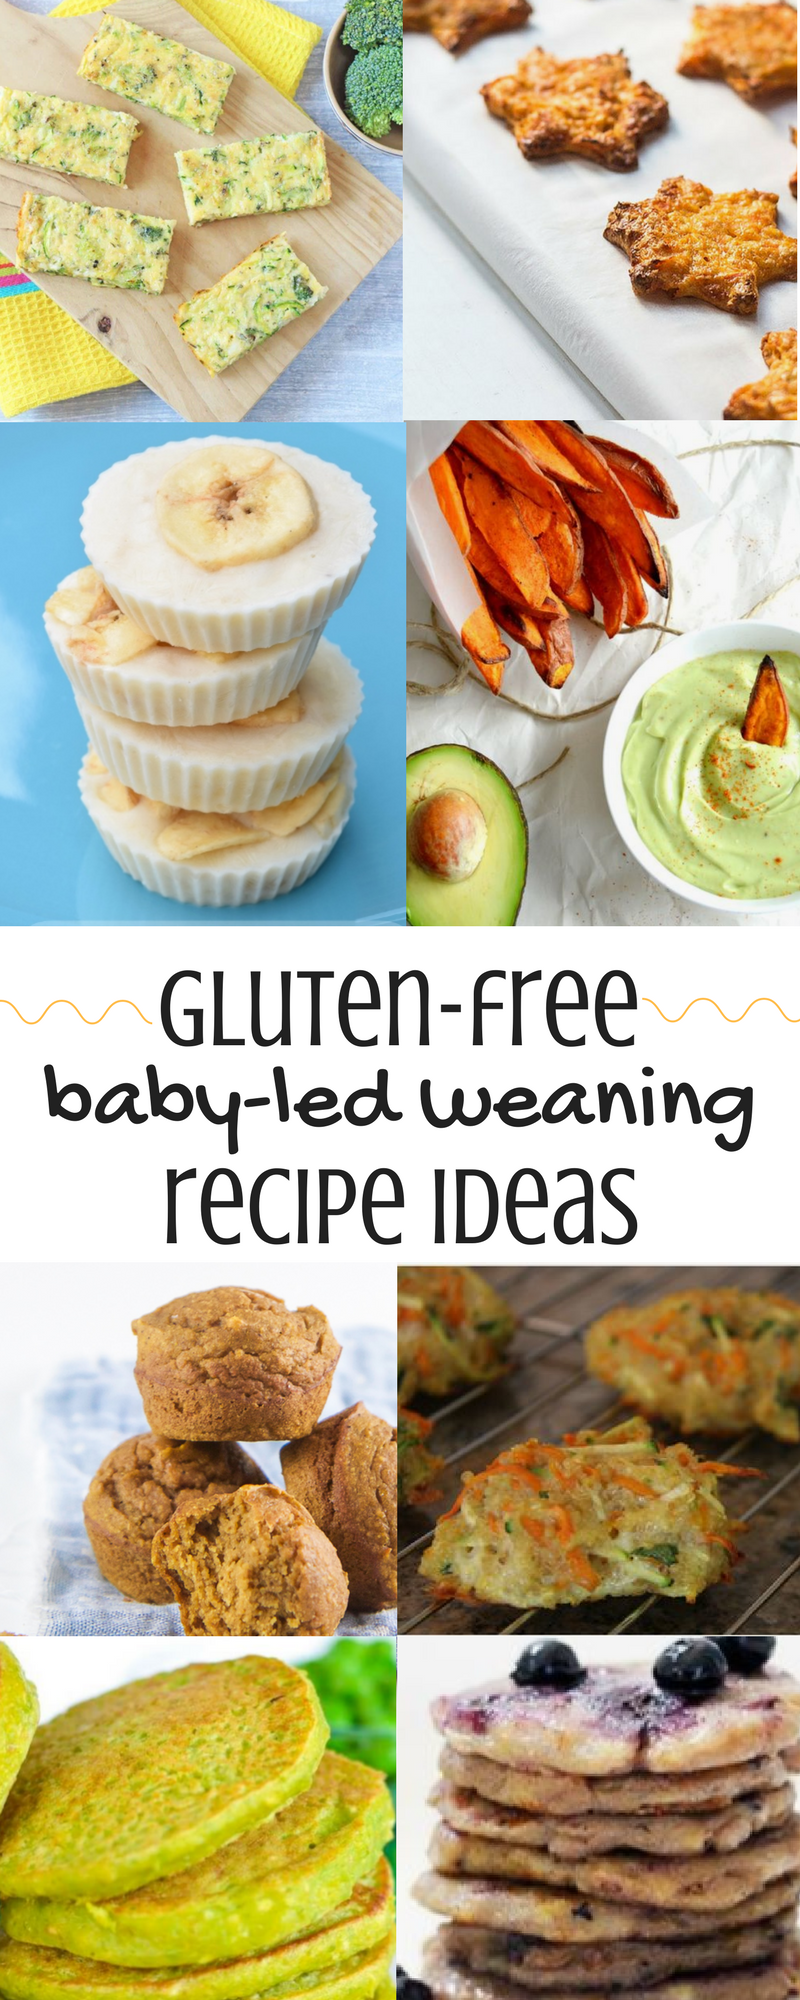 Best GlutenFree Foods for BabyLed Weaning Weaning